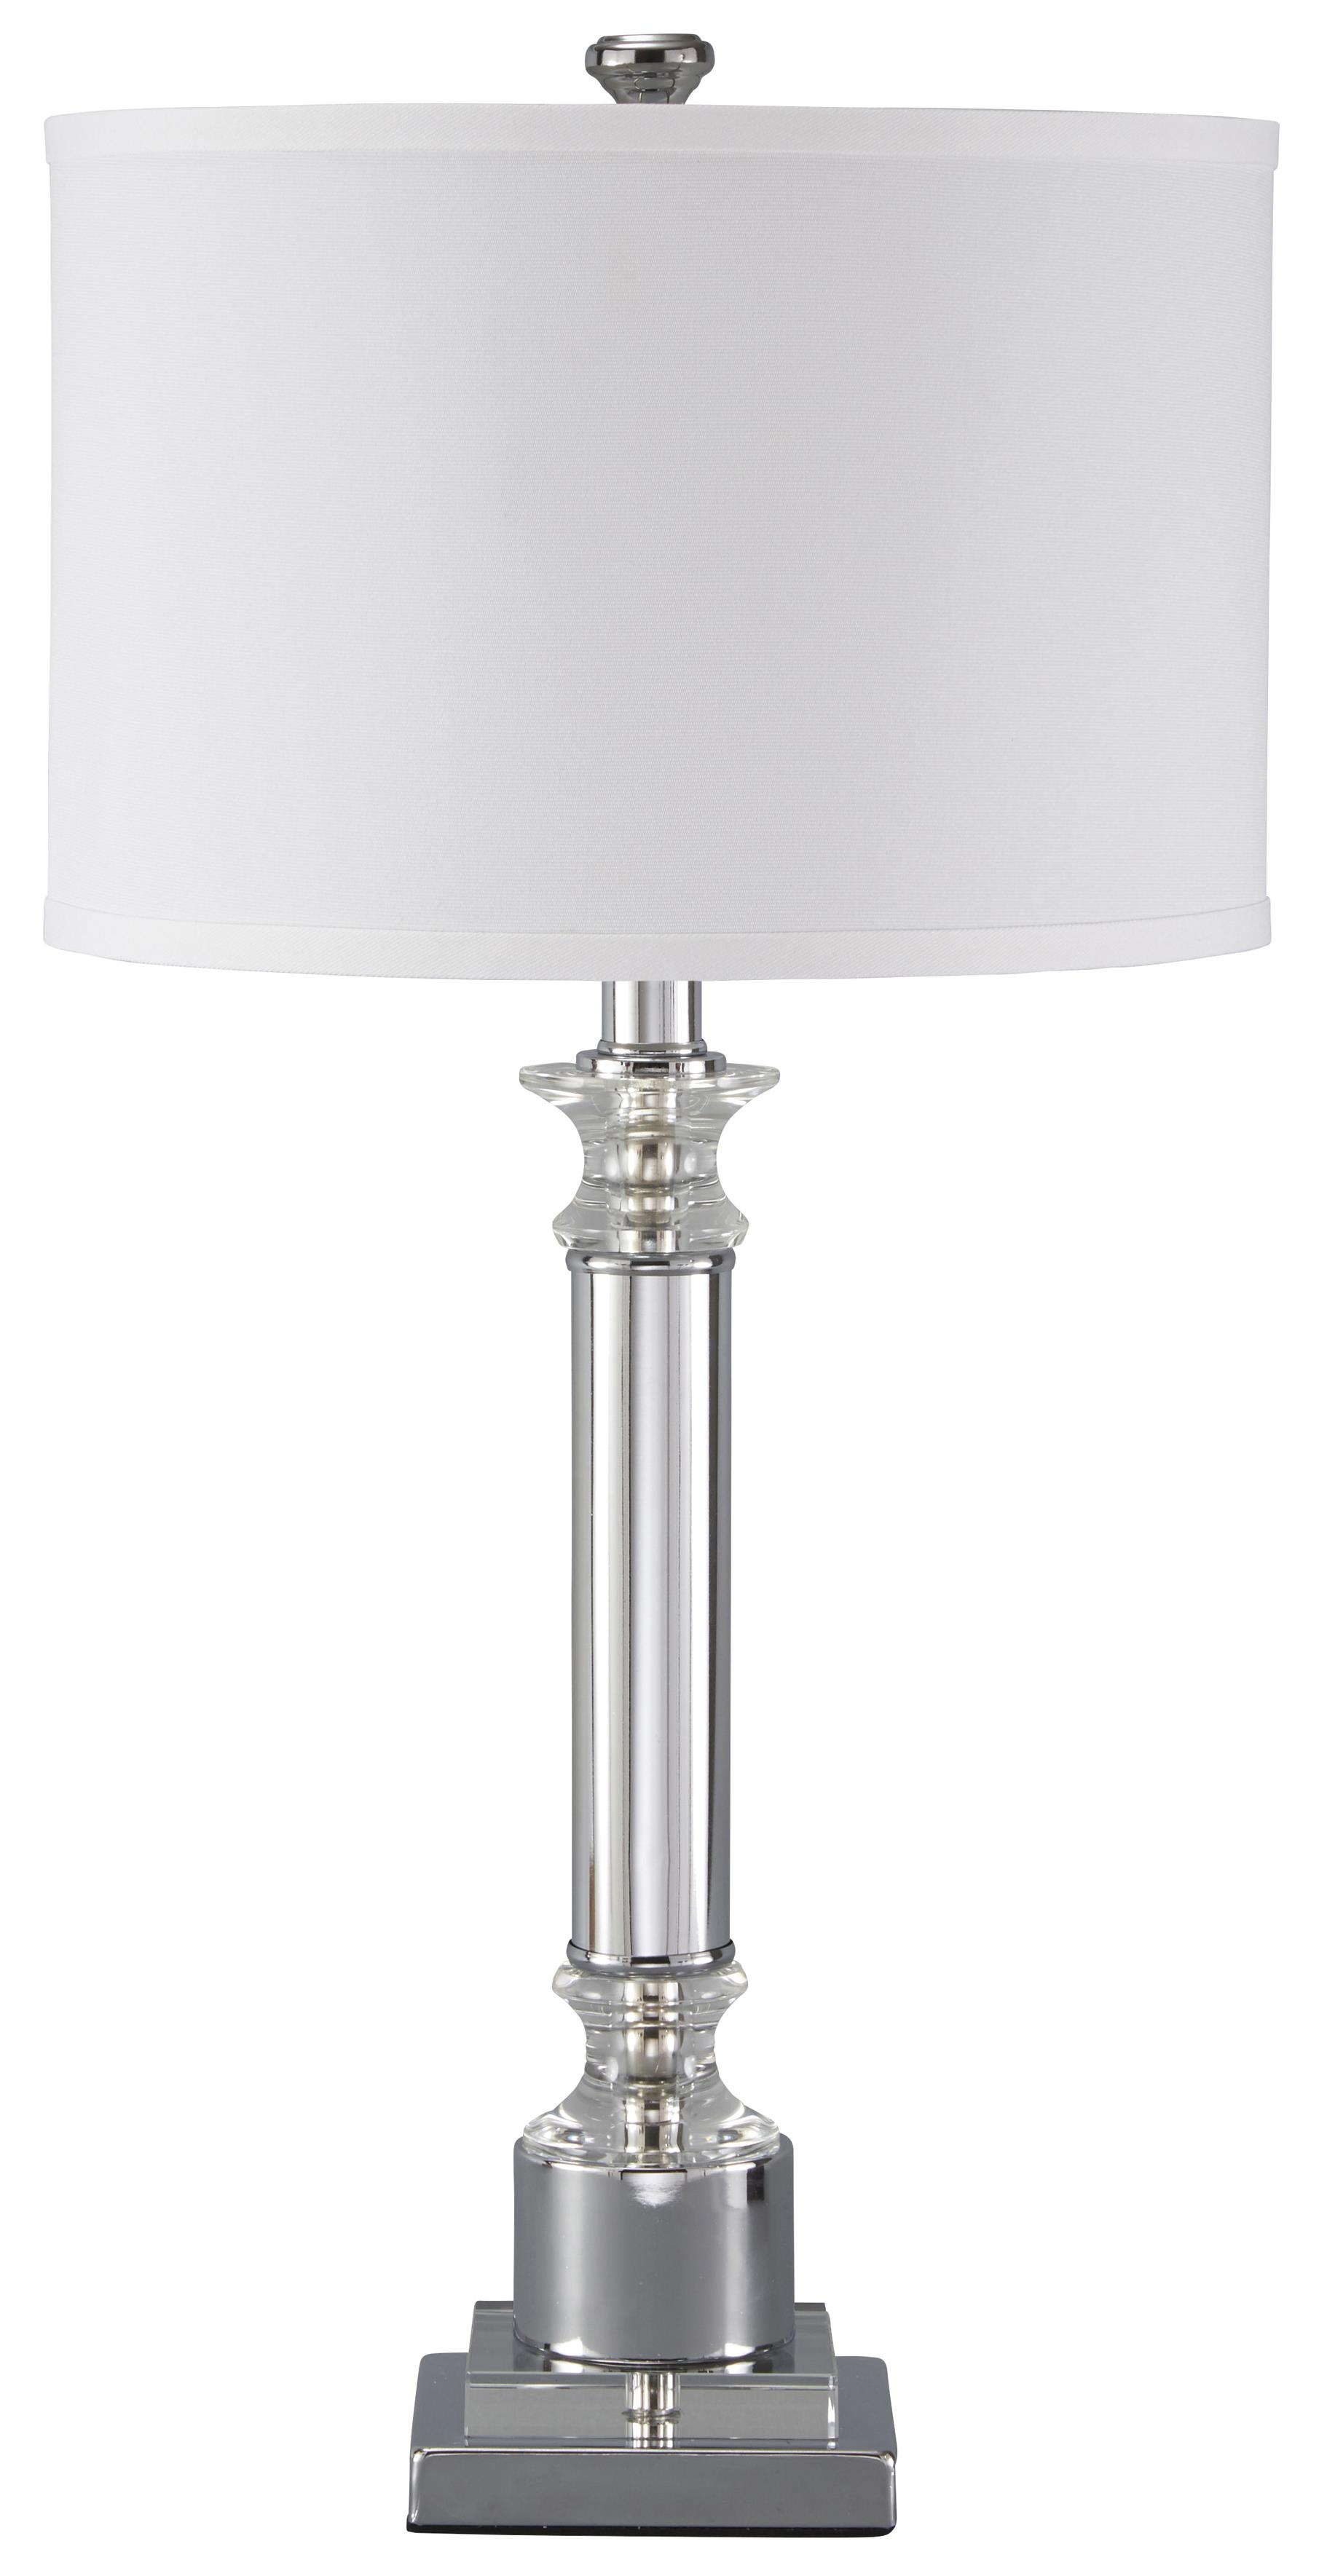 Signature Design by Ashley Lamps - Traditional Classics Marlon Metal Table Lamp - Item Number: L428044